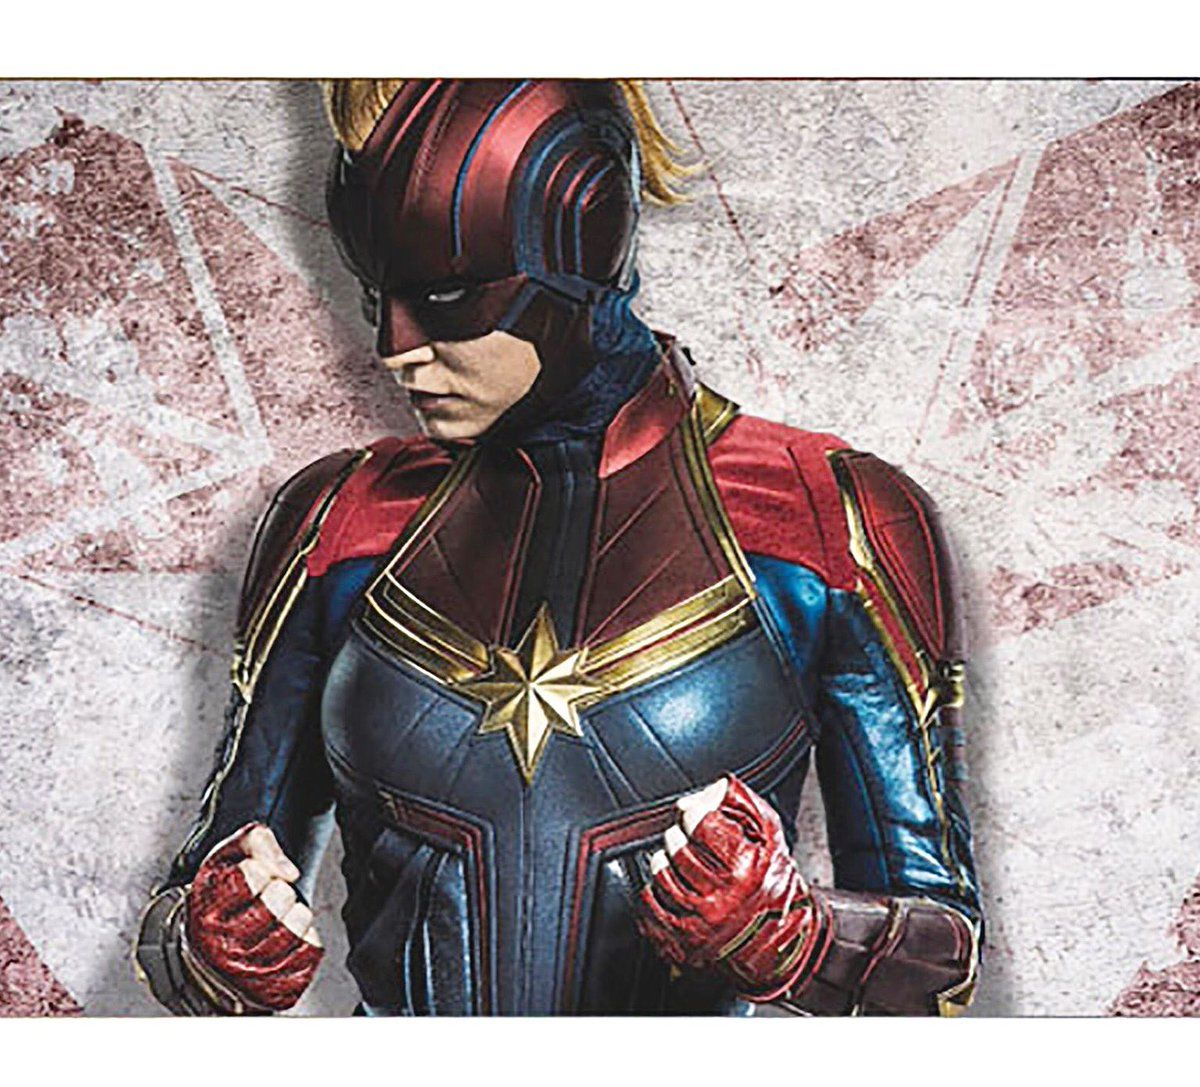 Captain-Marvel-Focus.jpg?q=50&fit=crop&w